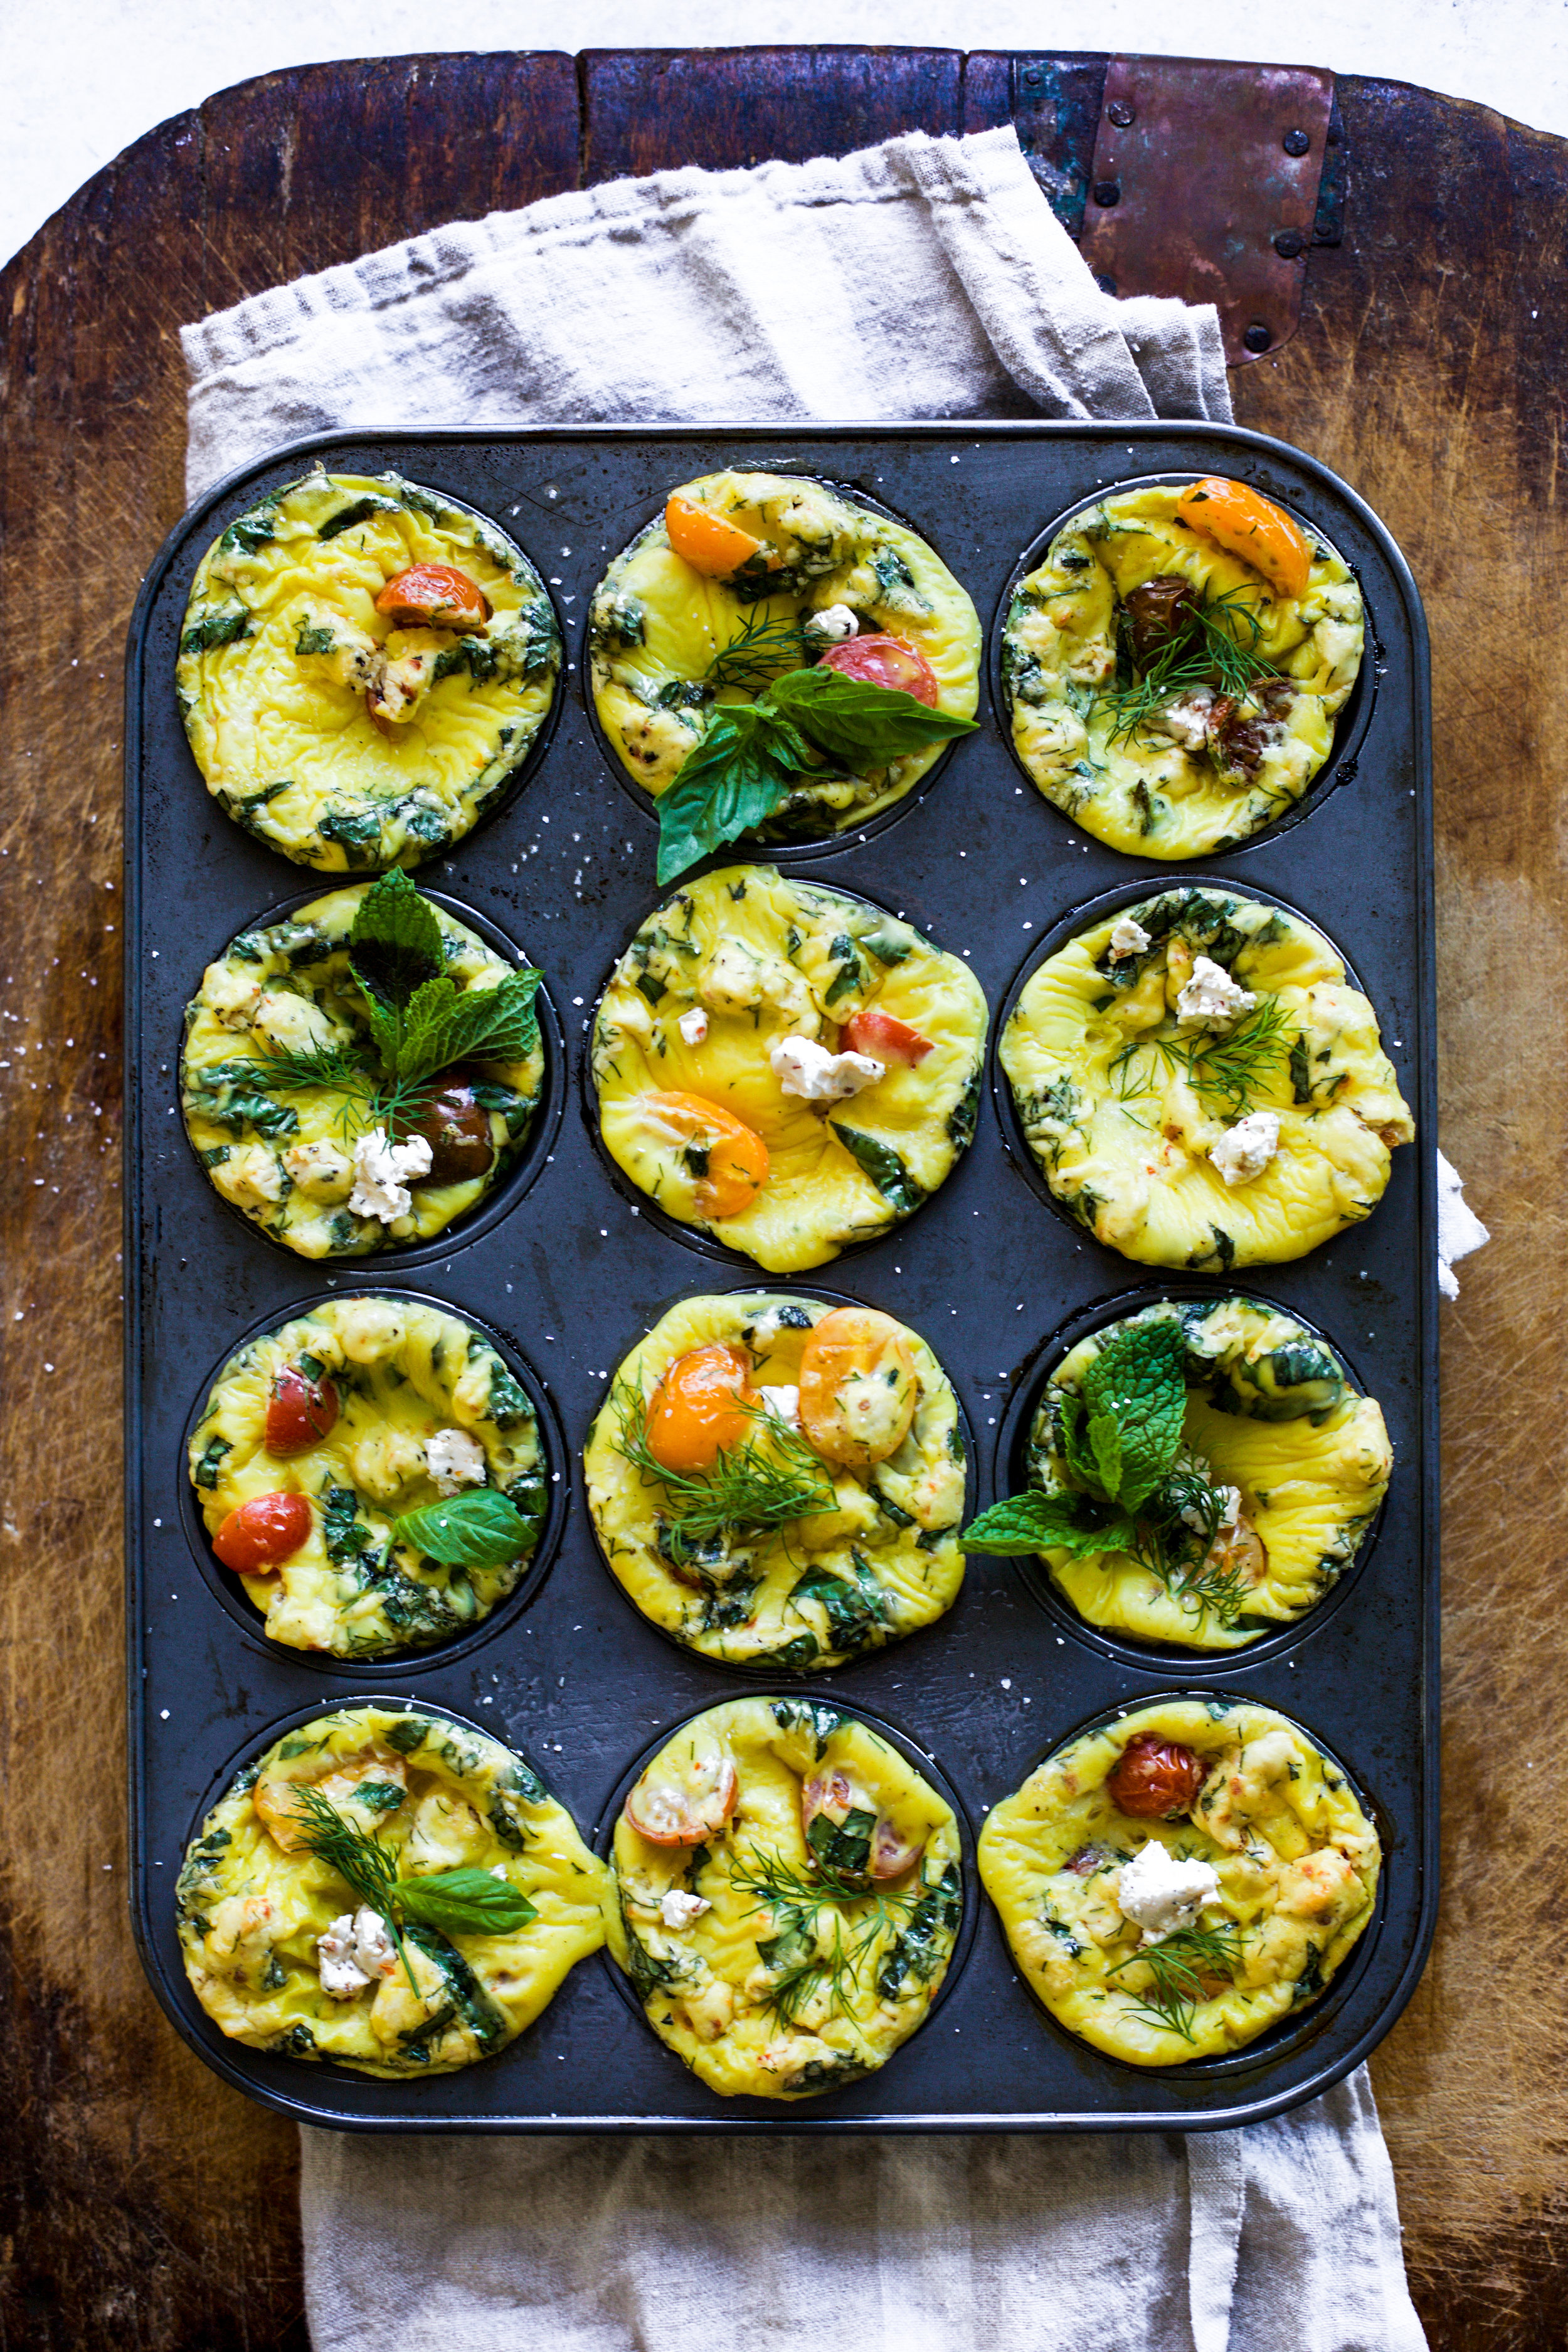 Herby Tomato and Goat Cheese Egg Muffins: My Diary of Us